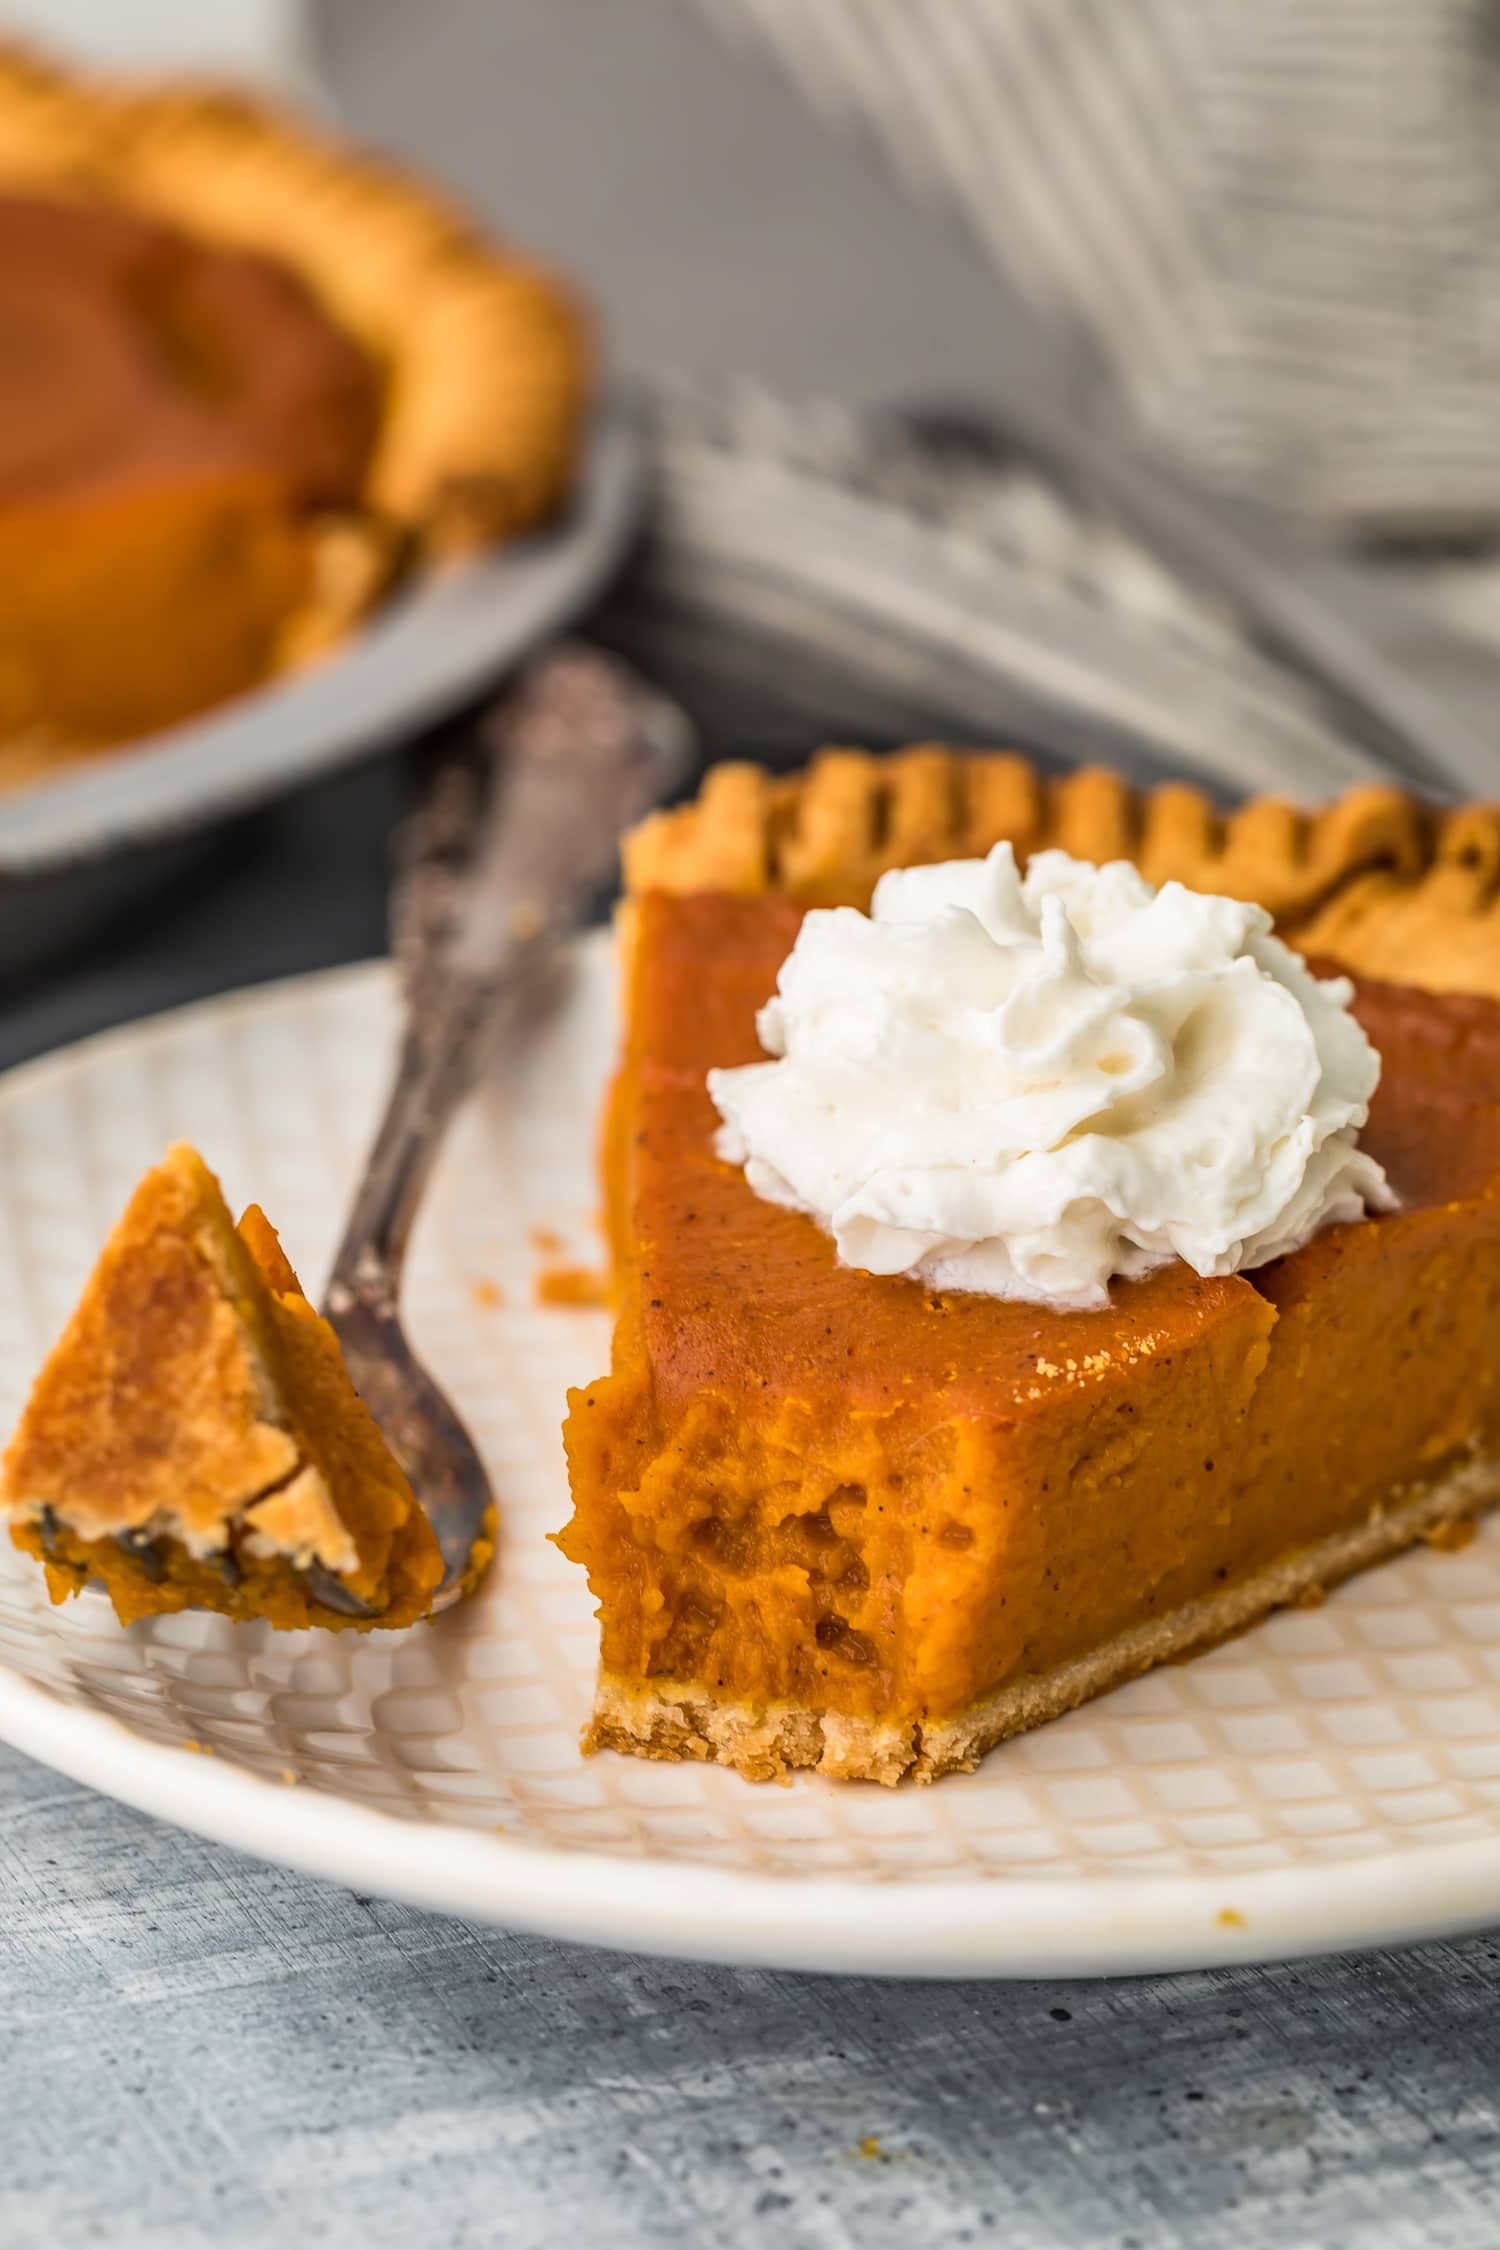 This Vegan Pumpkin Pie Recipe Is Made With Almond Milk For A Delicious And Vegan Thanksgiving De Vegan Pumpkin Pie Recipe Pumpkin Pie Recipes Vegan Pumpkin Pie